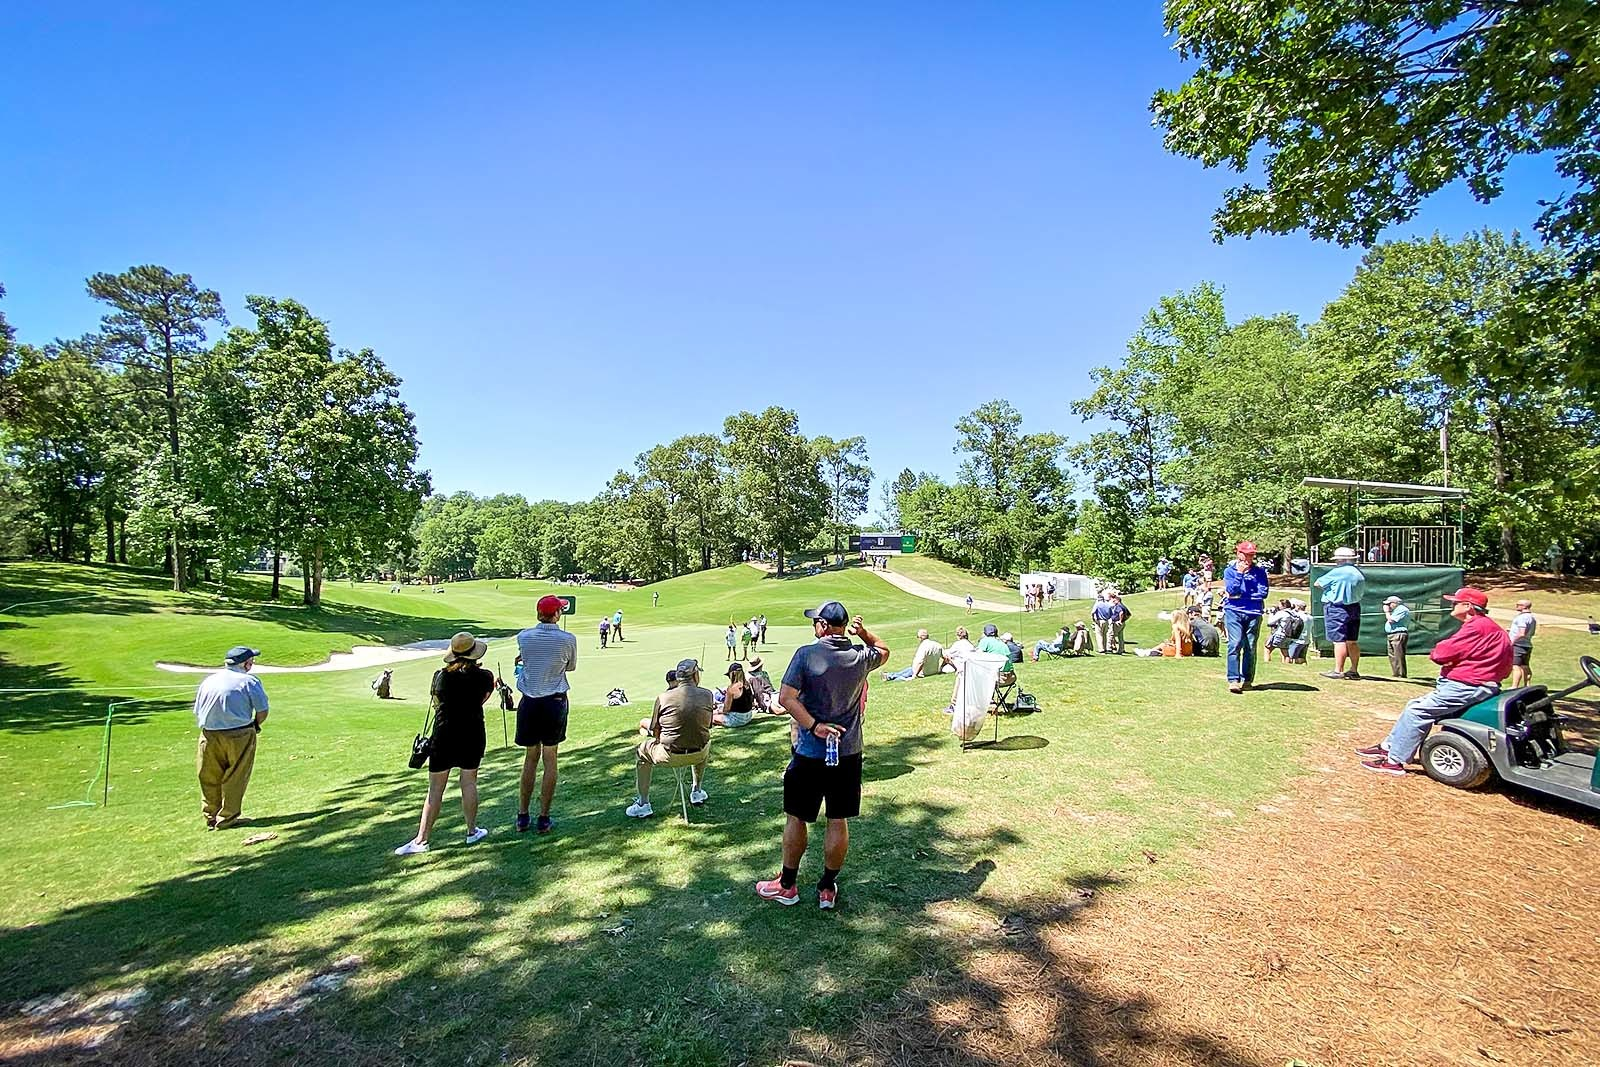 The audience at the 2021 Regions Tradition charity golf event